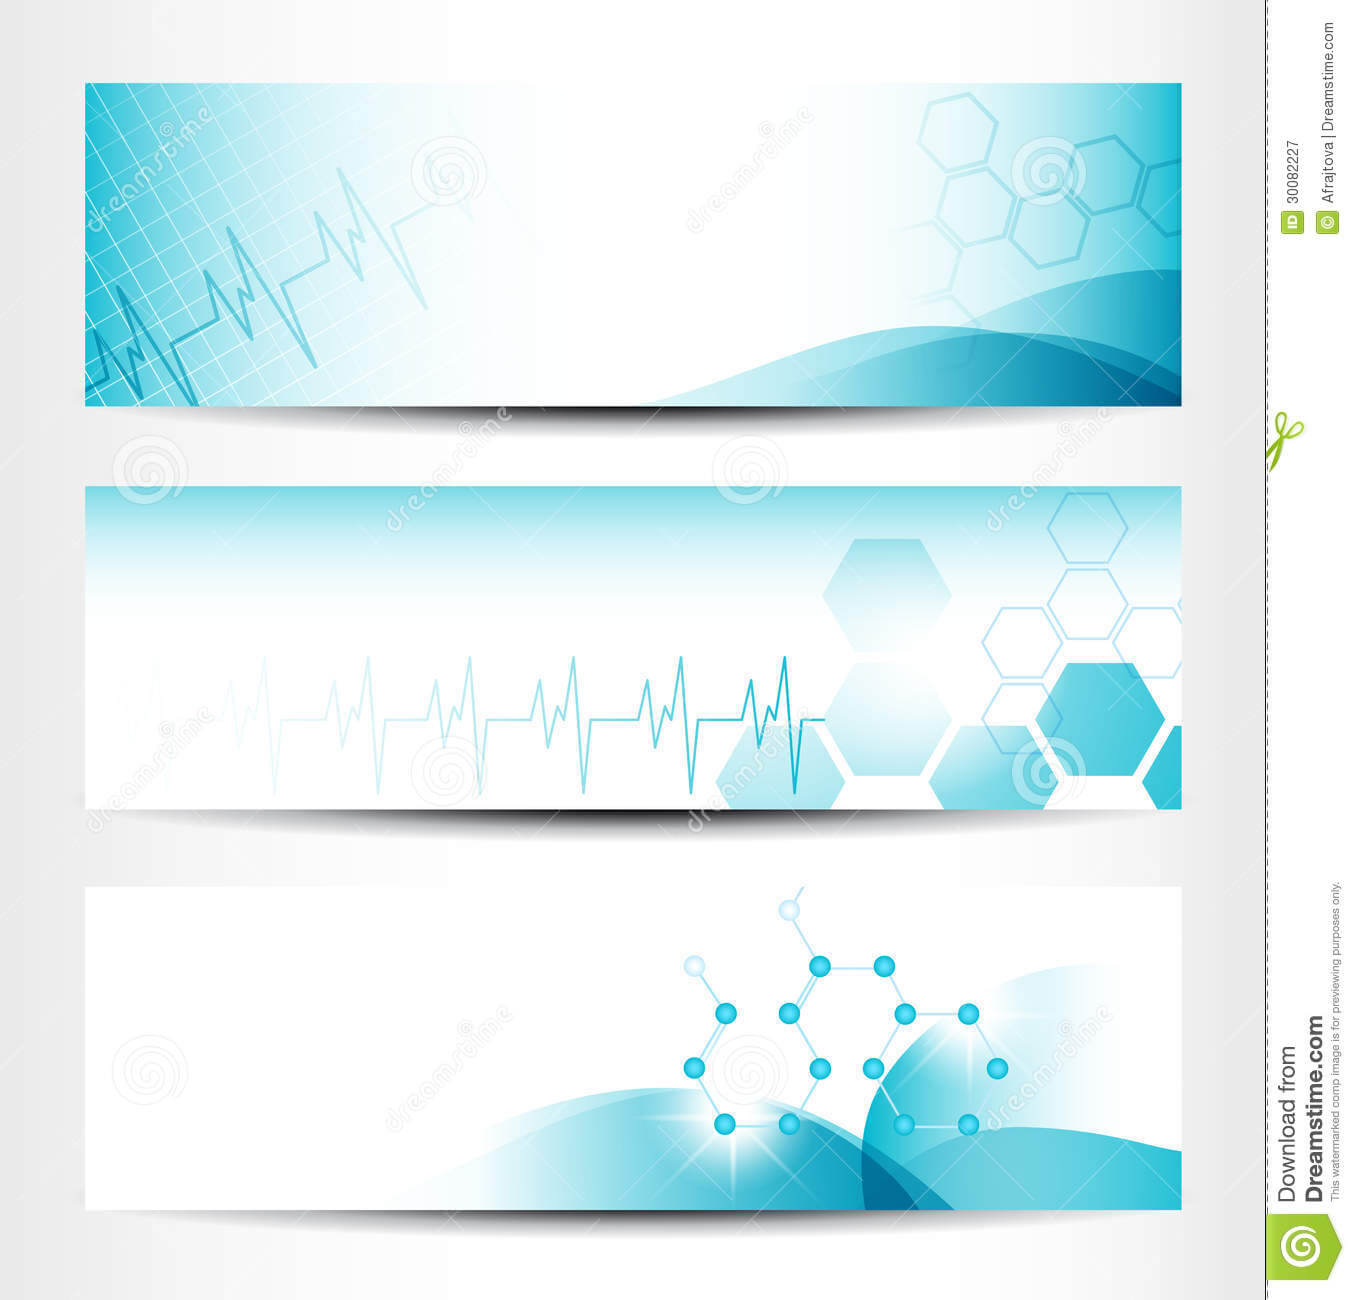 Medical Banners Stock Vector. Illustration Of Beat With Regard To Medical Banner Template